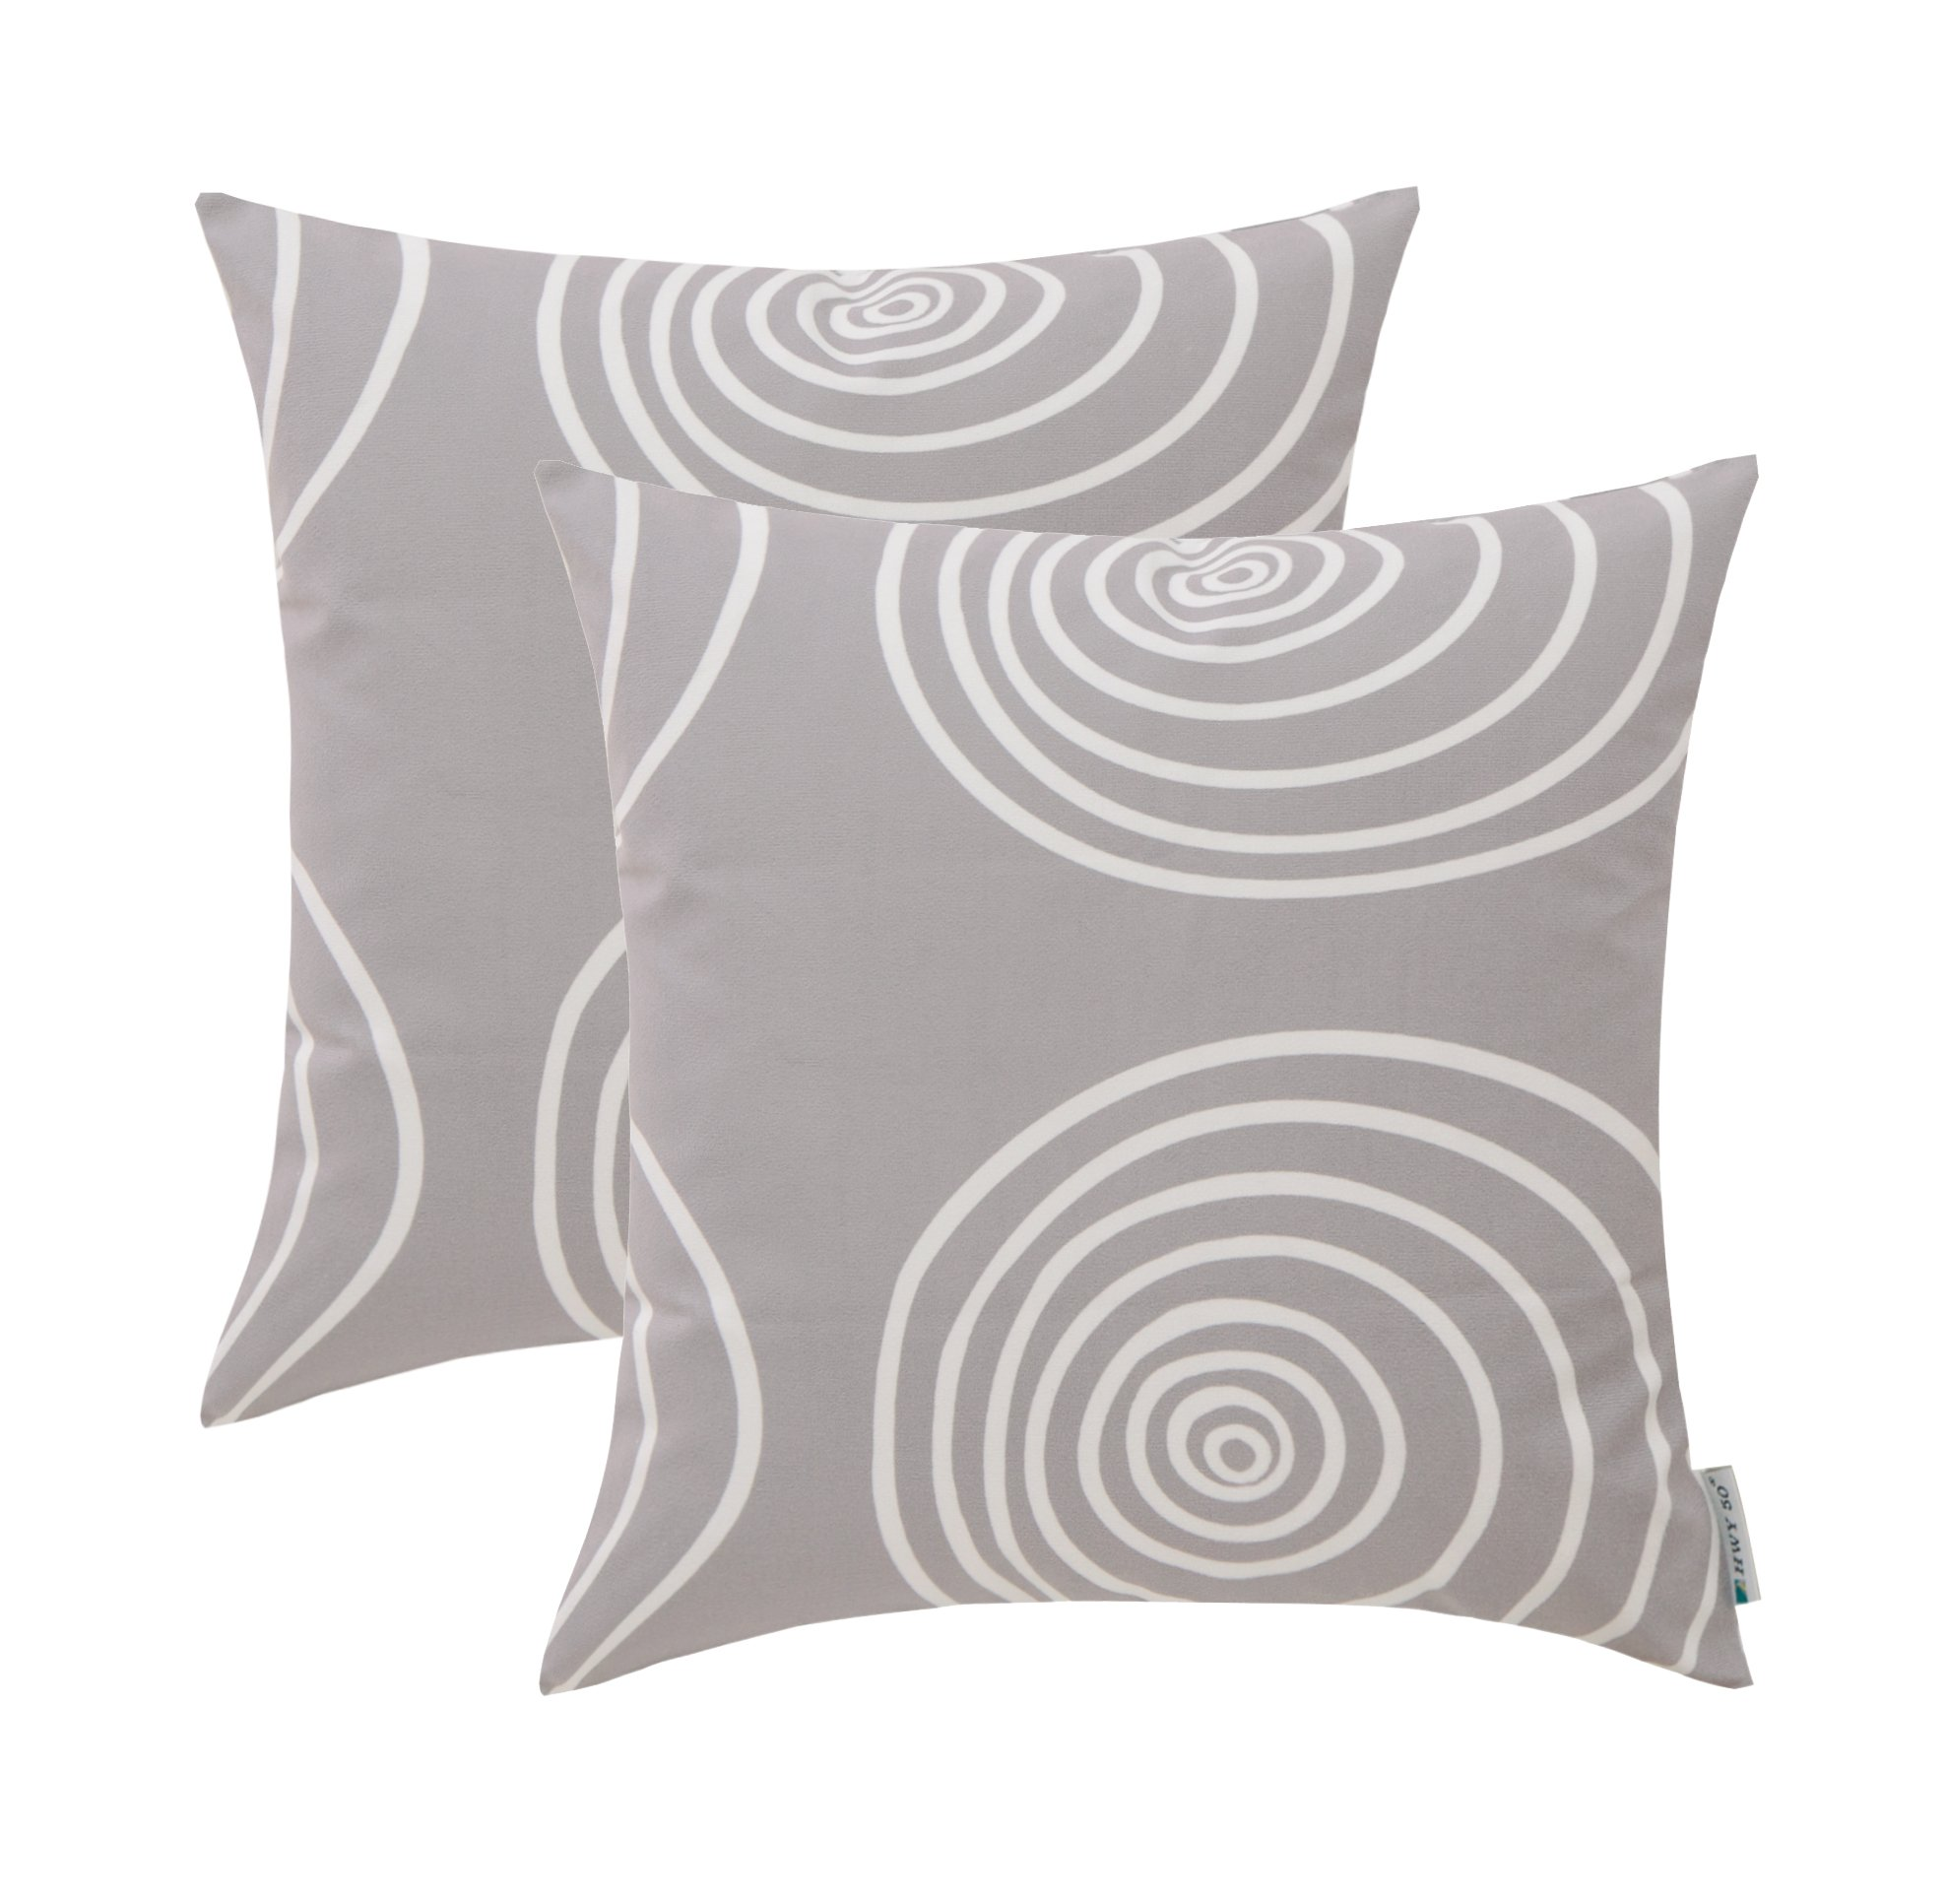 HWY 50 Grey Couch Throw Pillows Covers 18 x 18 inch, Pack of 2 Printed Polyester Comfortable Fleece Decorative Throw Pillows Cases Sofa Bed, European Circle Design Cushion Covers